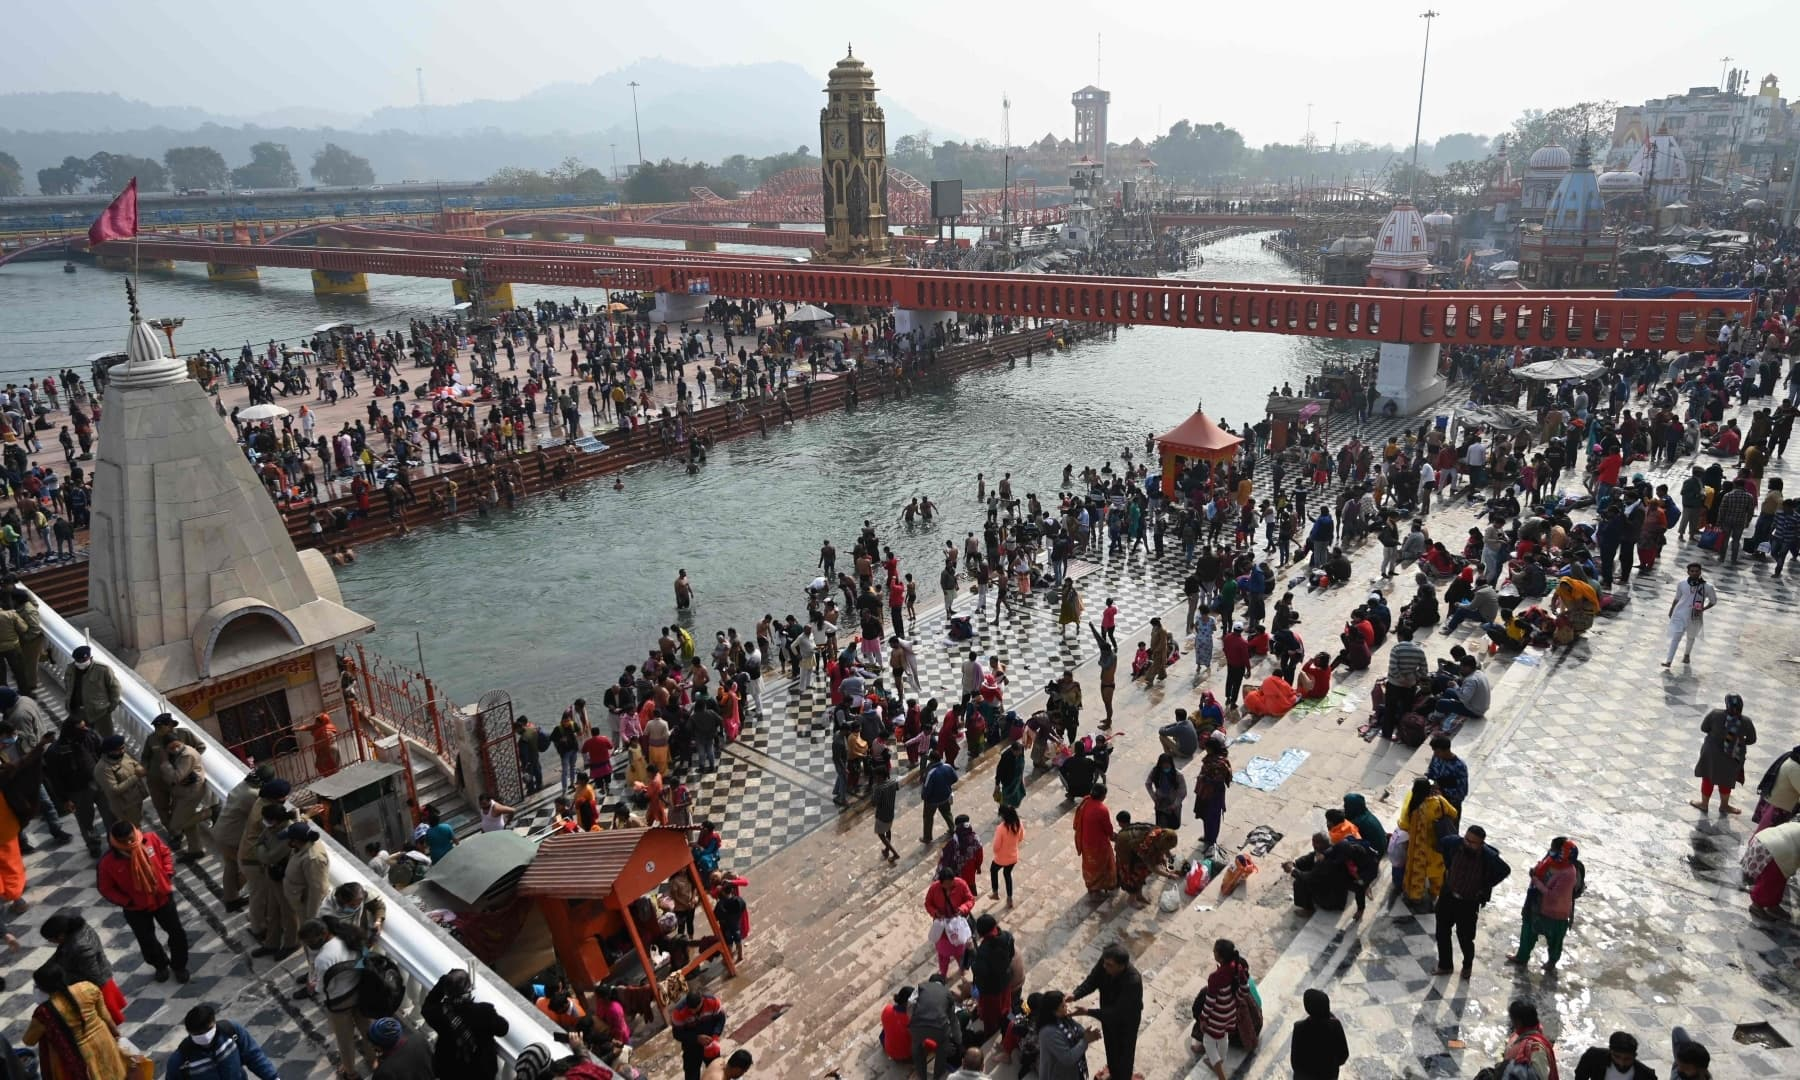 A general view shows Hindu devotees taking a holy dip in the waters of the River Ganges during Makar Sankranti, on the first day of the religious Kumbh Mela festival in Haridwar on January 14. — AFP